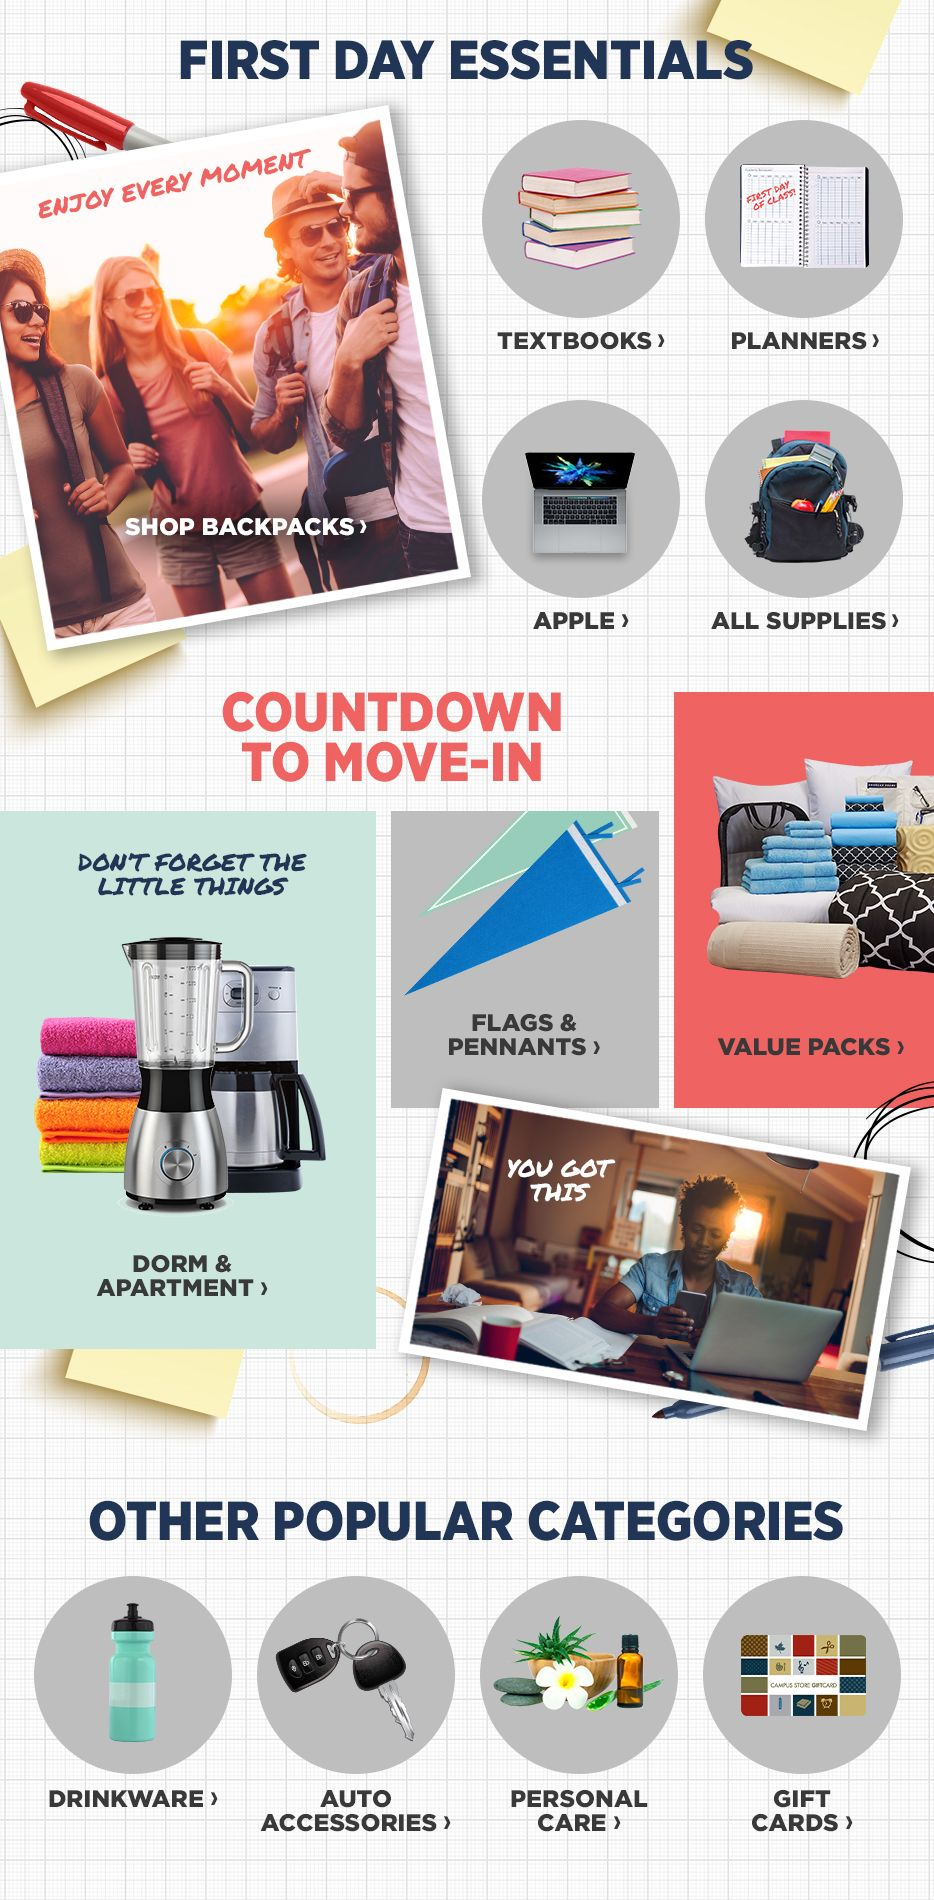 First Day Essentials. Shop Textbooks. Shop Planners. Shop Apple. Shop All Supplies. Countdown to Move-In. Shop Dorm & Apartment. Shop Flags & Pennants. Shop Value Packs. Other Popular Categories. Shop Drinkware. Shop Auto Accessories. Shop Personal Care. Shop Gift Cards.